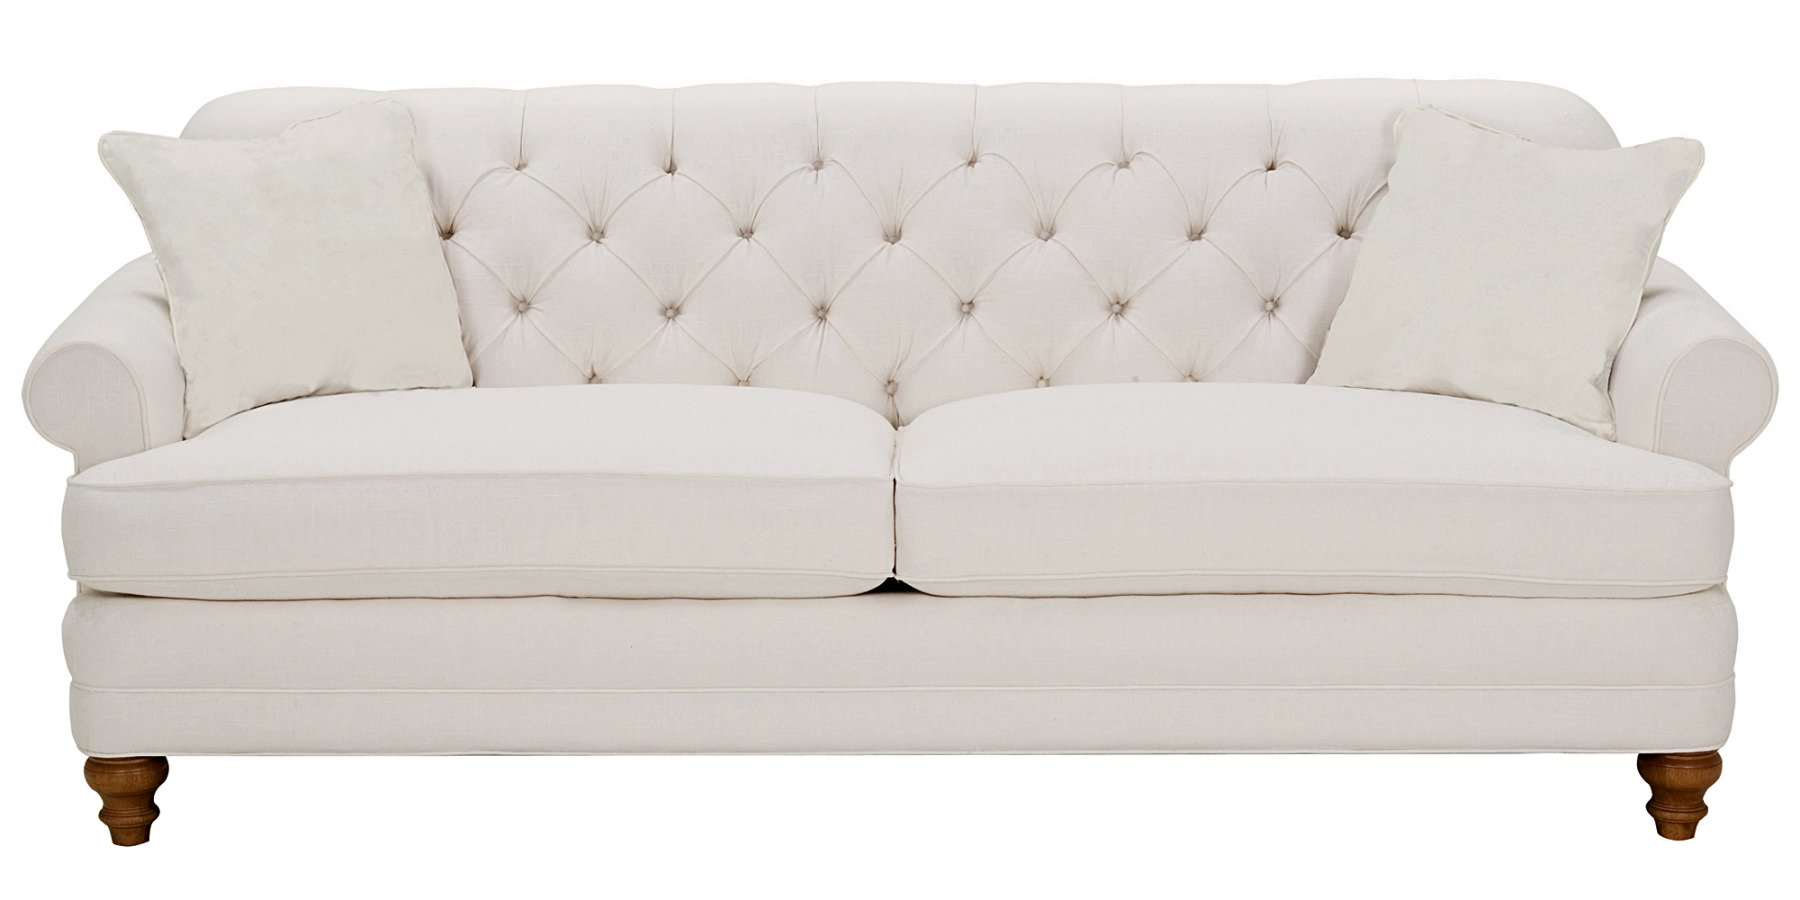 Modern Sleeper Sofa Queen Home Gallery